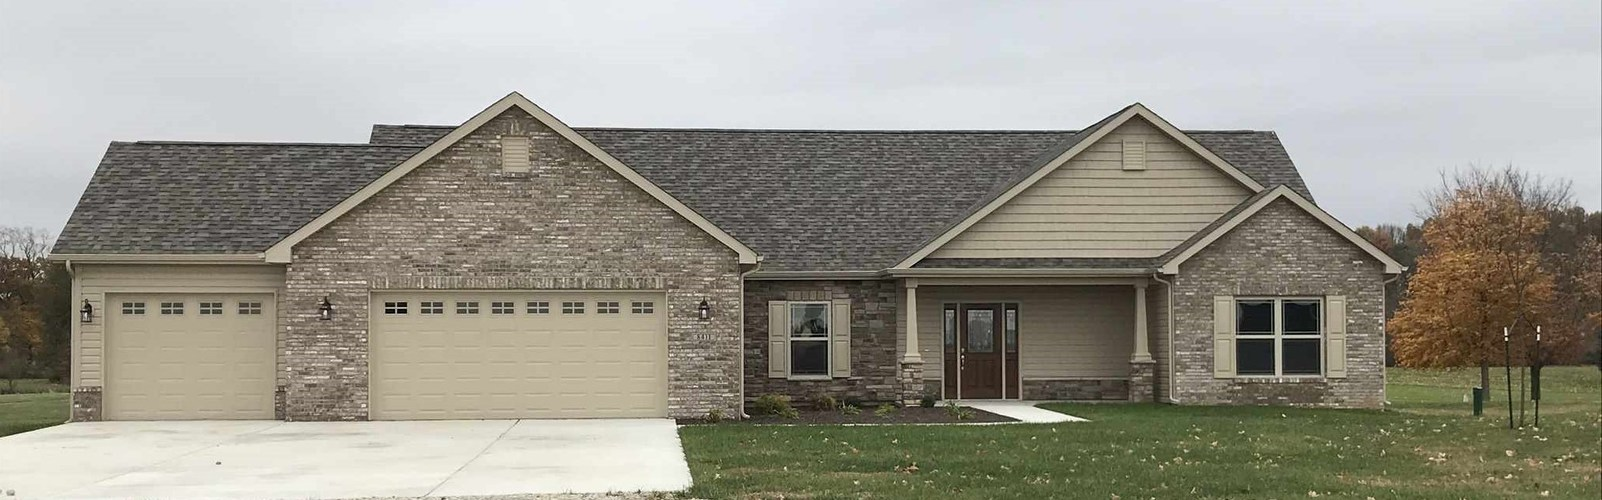 8411 Division Road West Lafayette, IN 47906 | MLS 201931404 | photo 1